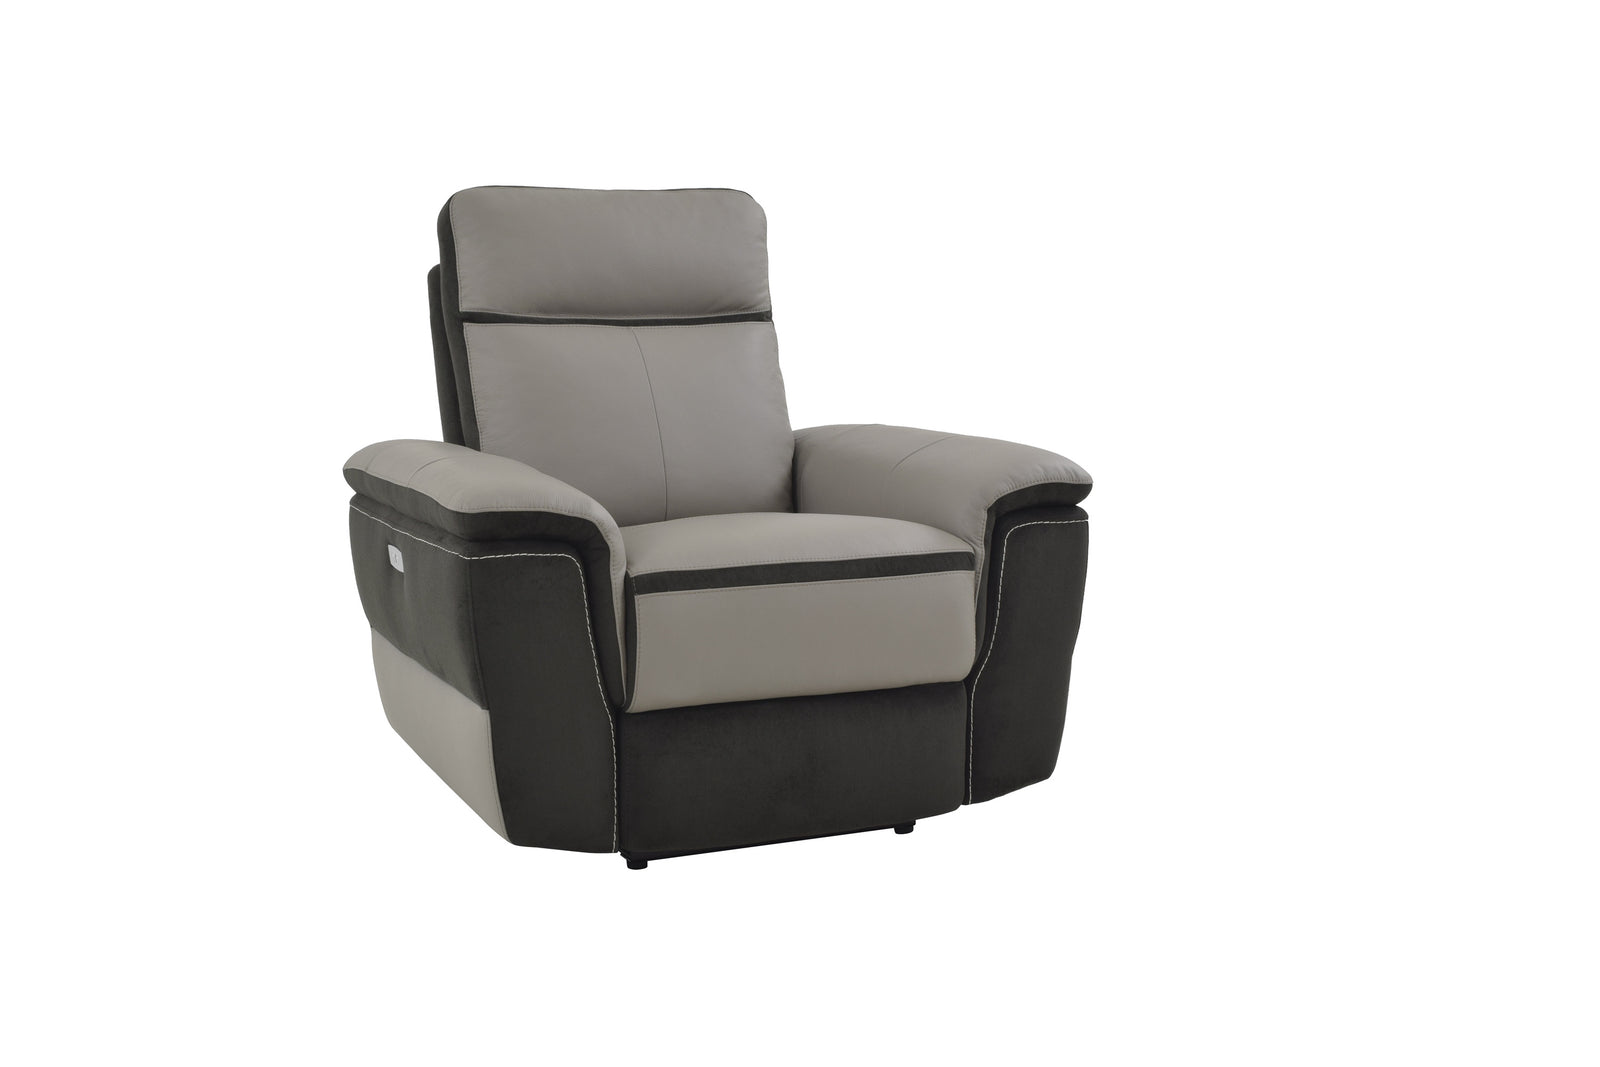 Massimo 3PC Leather Power Recliner